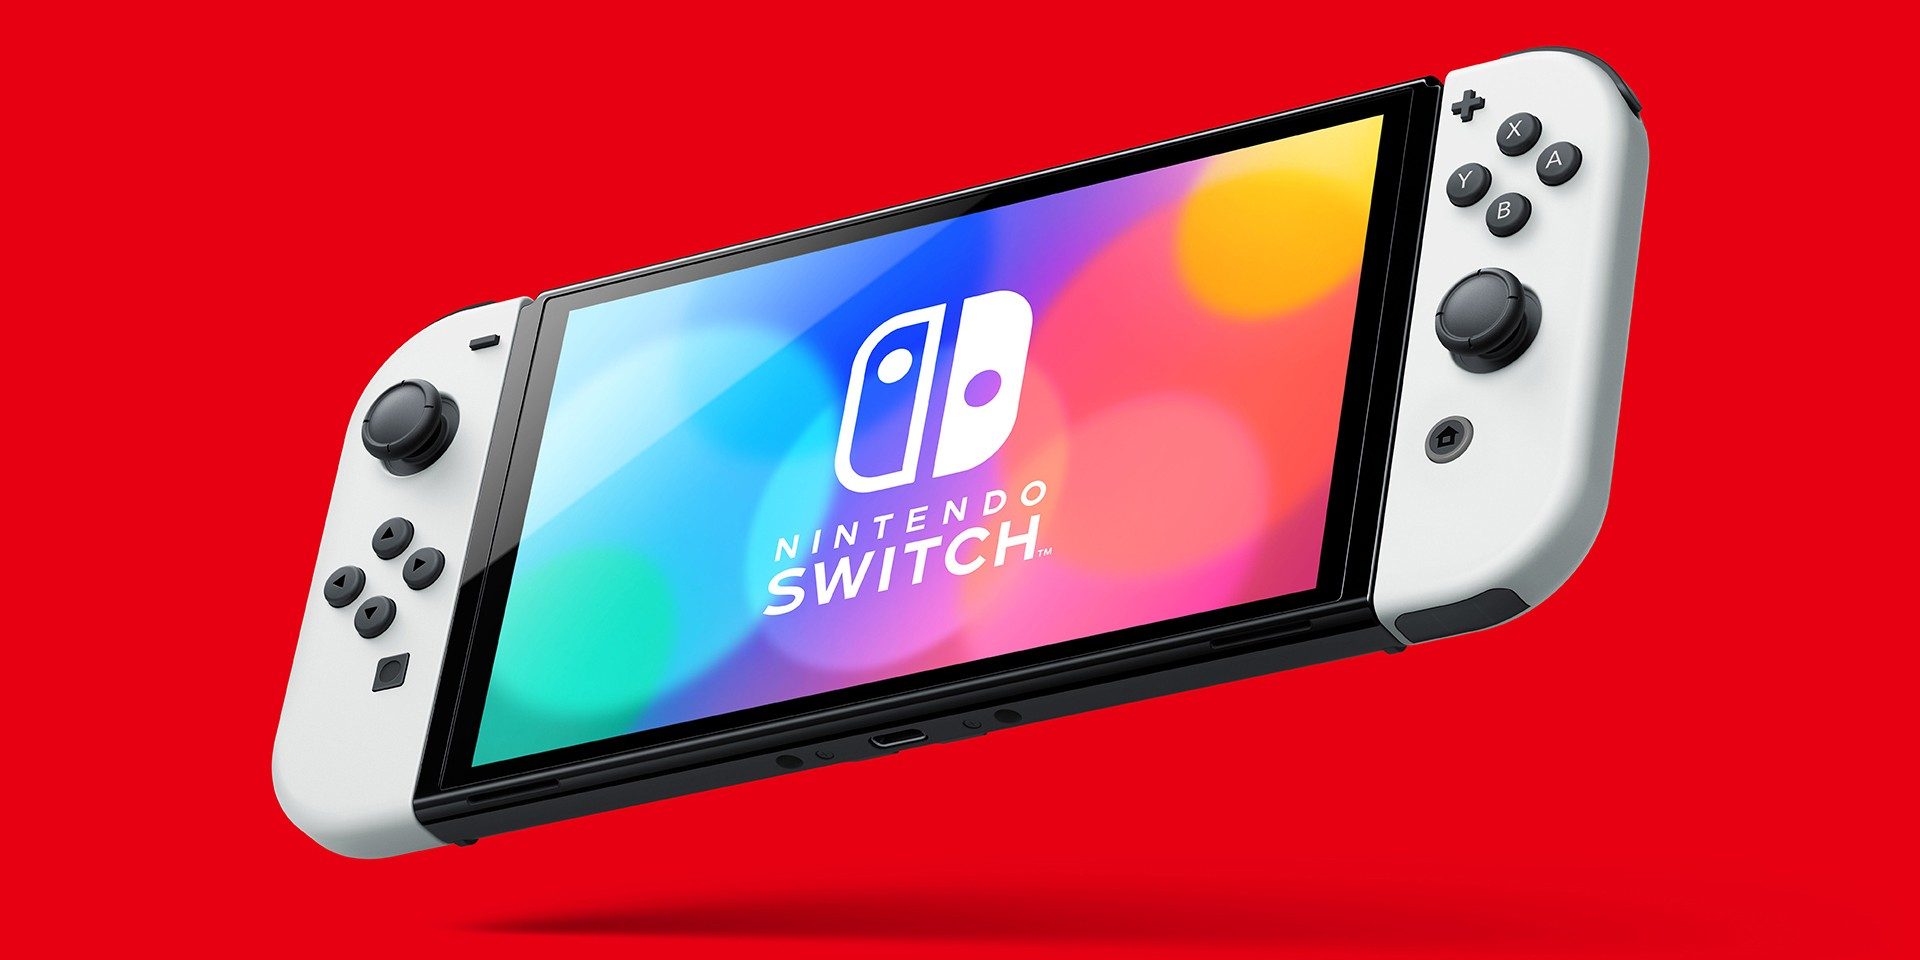 Nintendo announces new Nintendo Switch model with 7-inch OLED screen, enhanced audio, and more